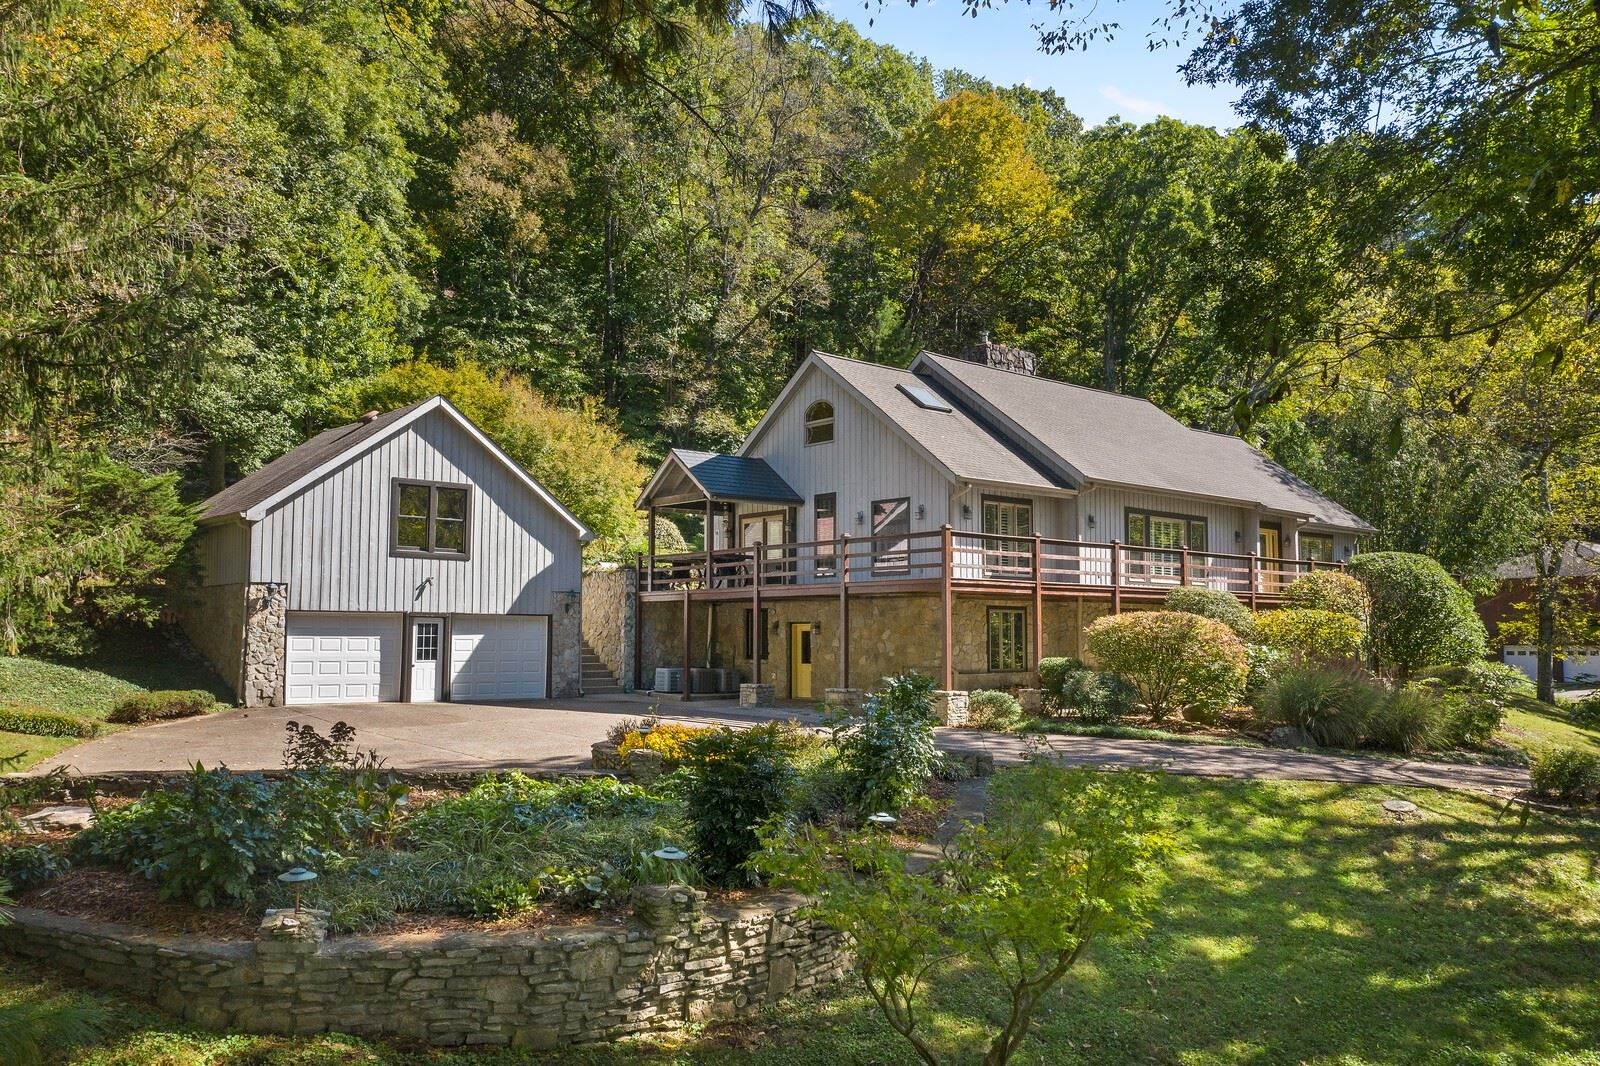 Photo of 888 Holly Tree Gap Rd, Brentwood, TN 37027 (MLS # 2201389)